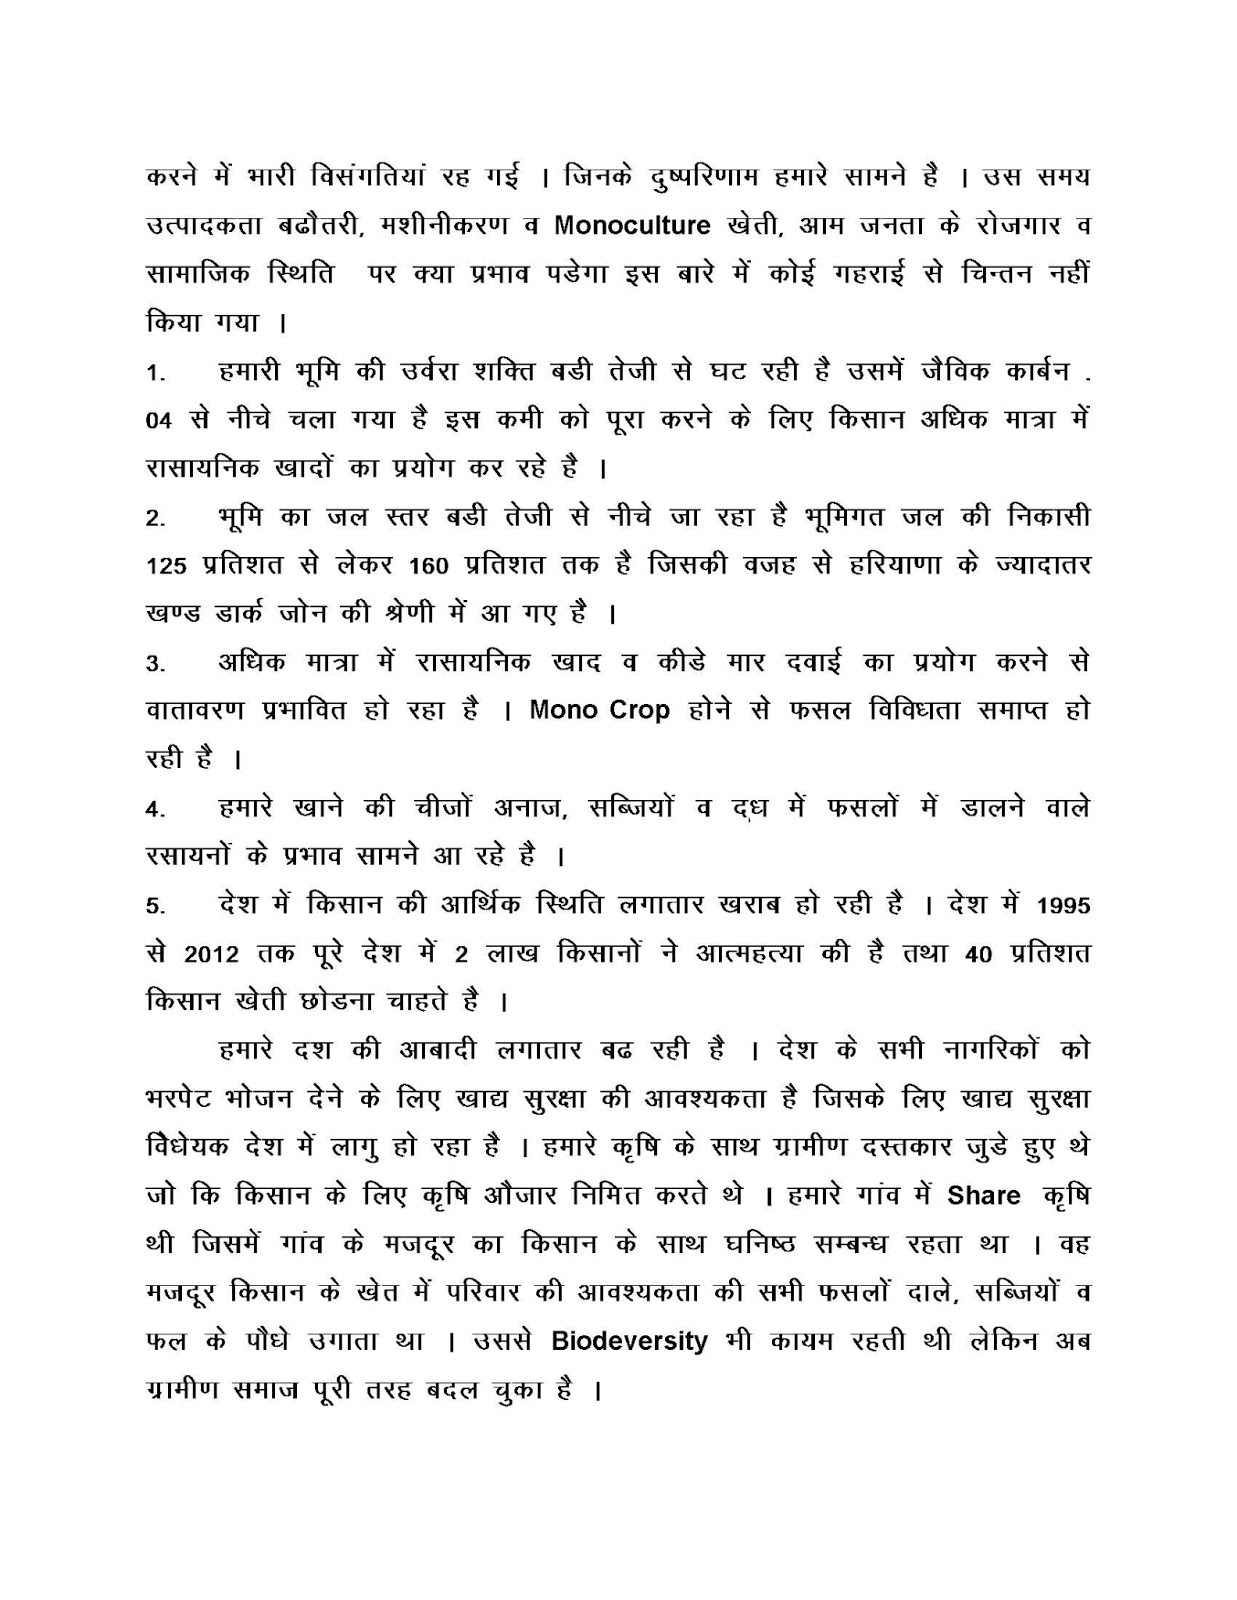 hard work essay in marathi Post navigation ← previous importance of hard work essay in marathi, cu boulder creative writing mfa, writing custom record reader.